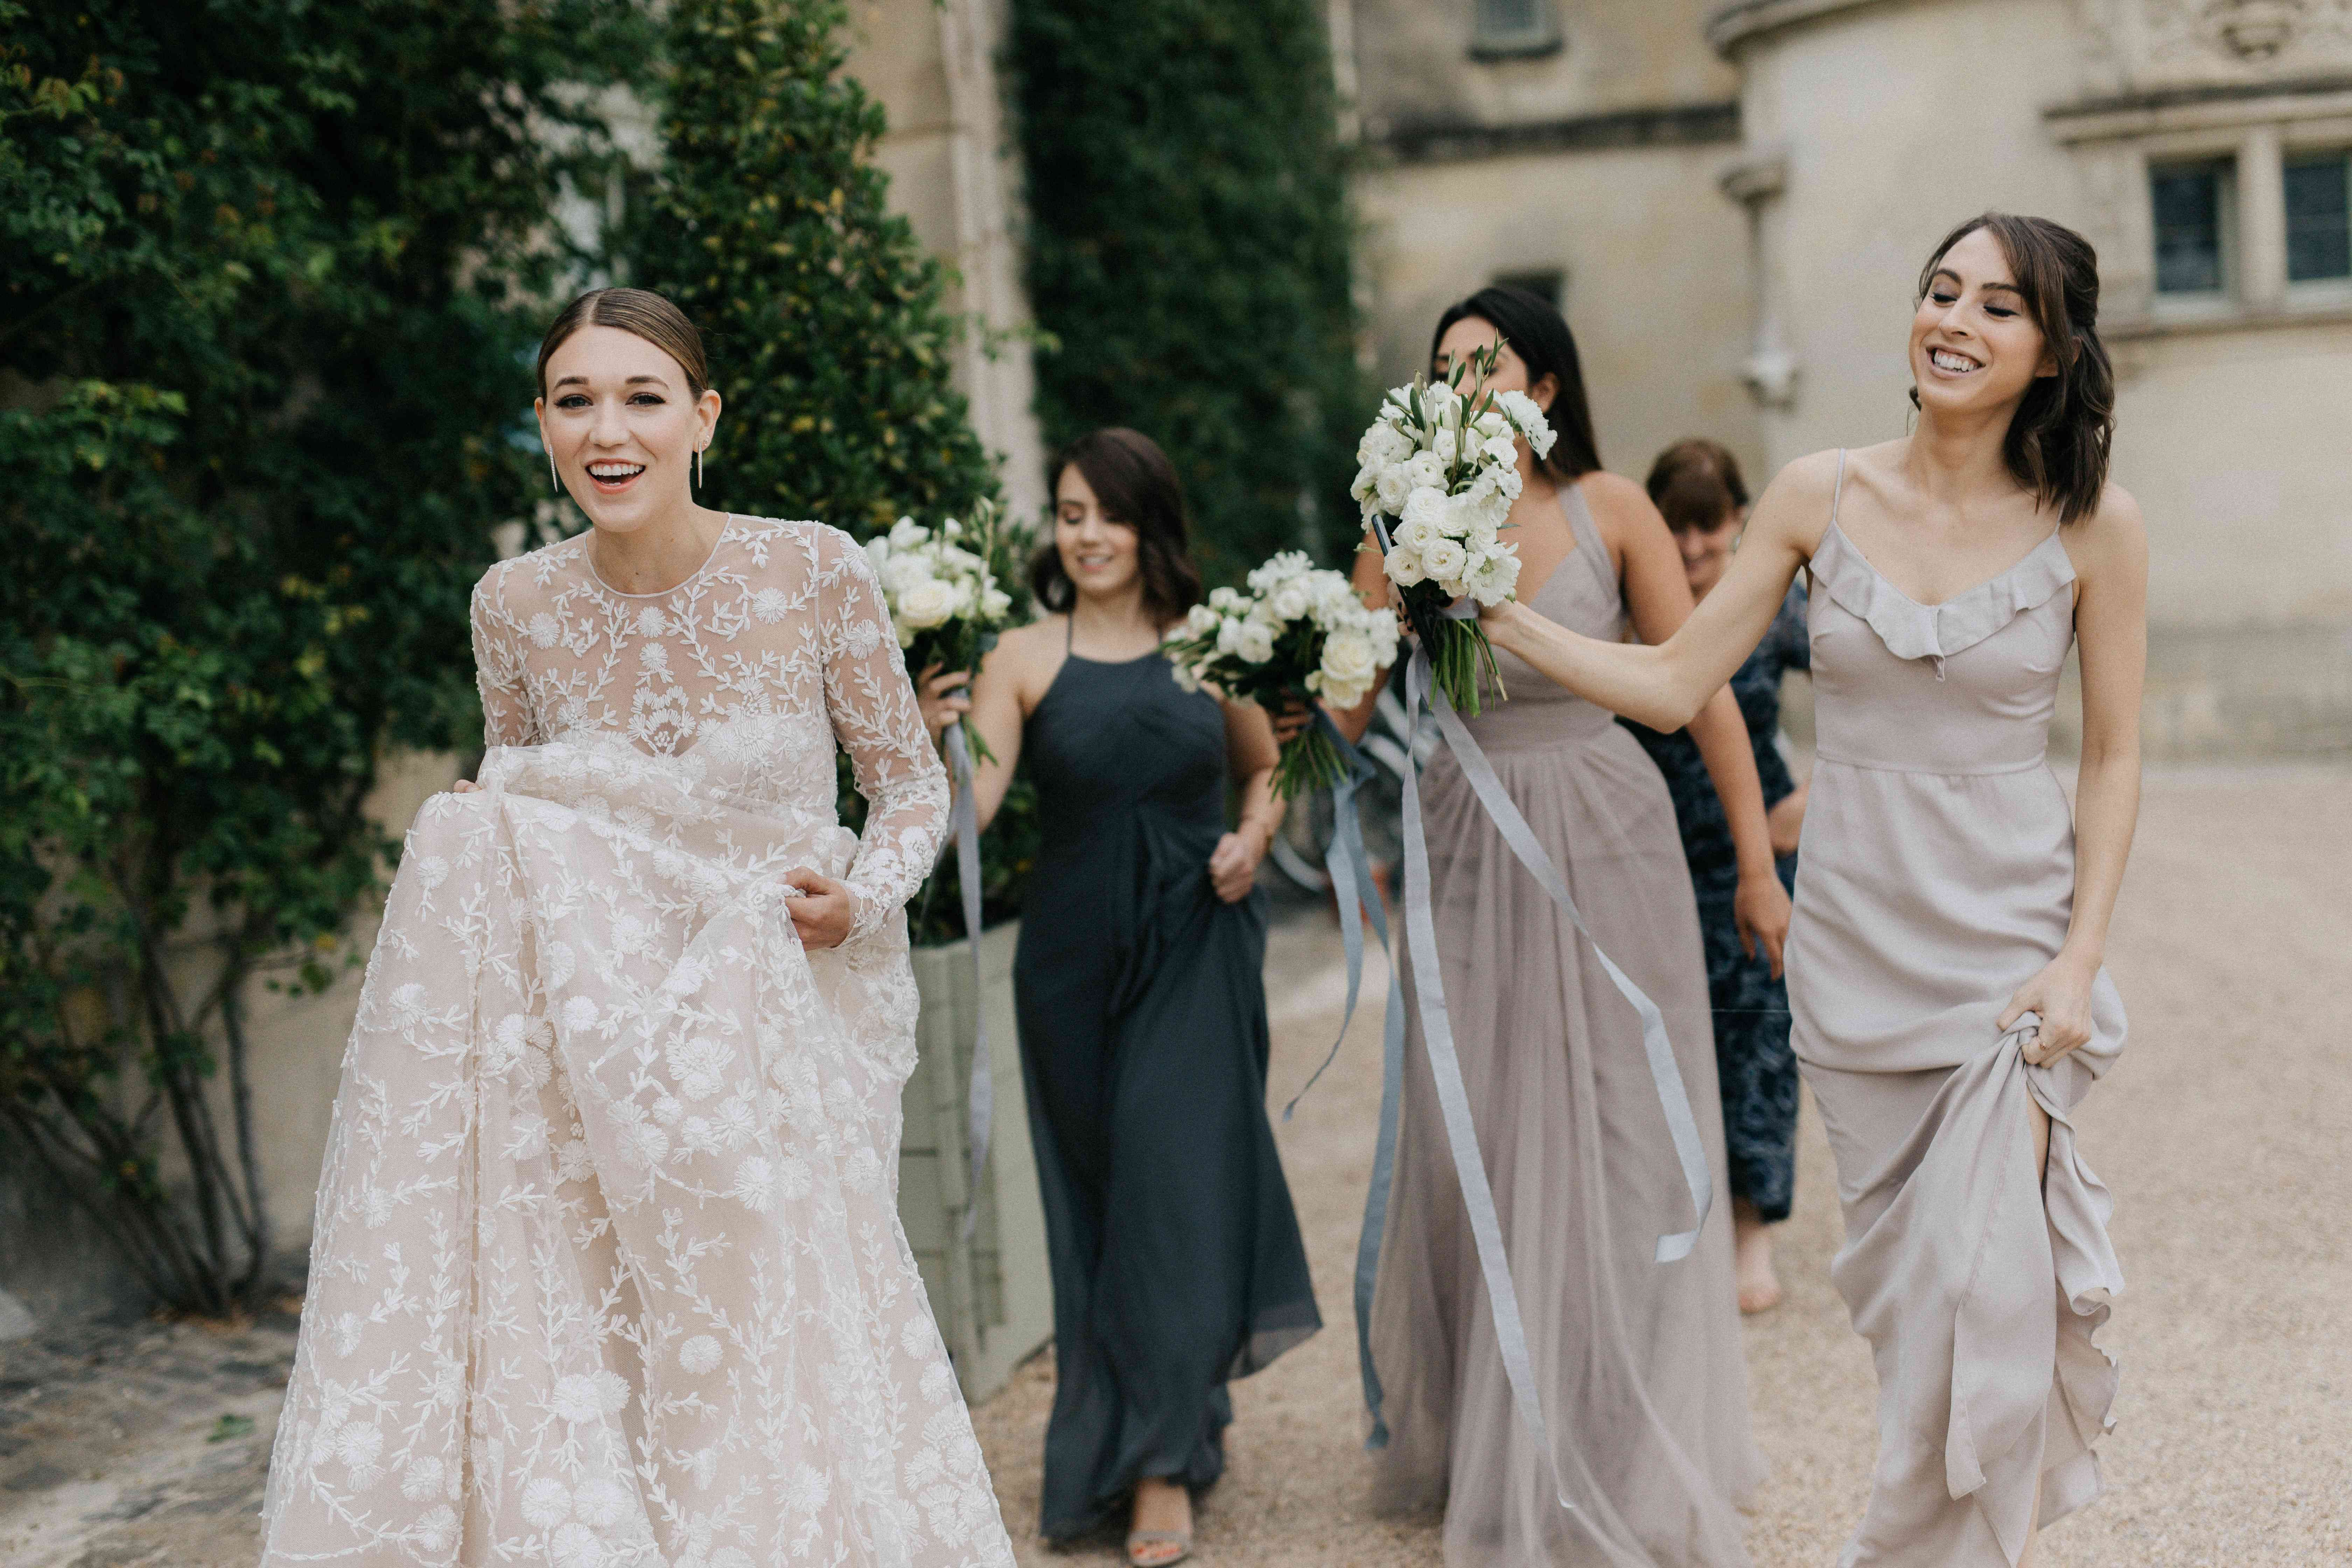 <p>mismatched bridesmaids dresses in shades of grey</p><br><br>